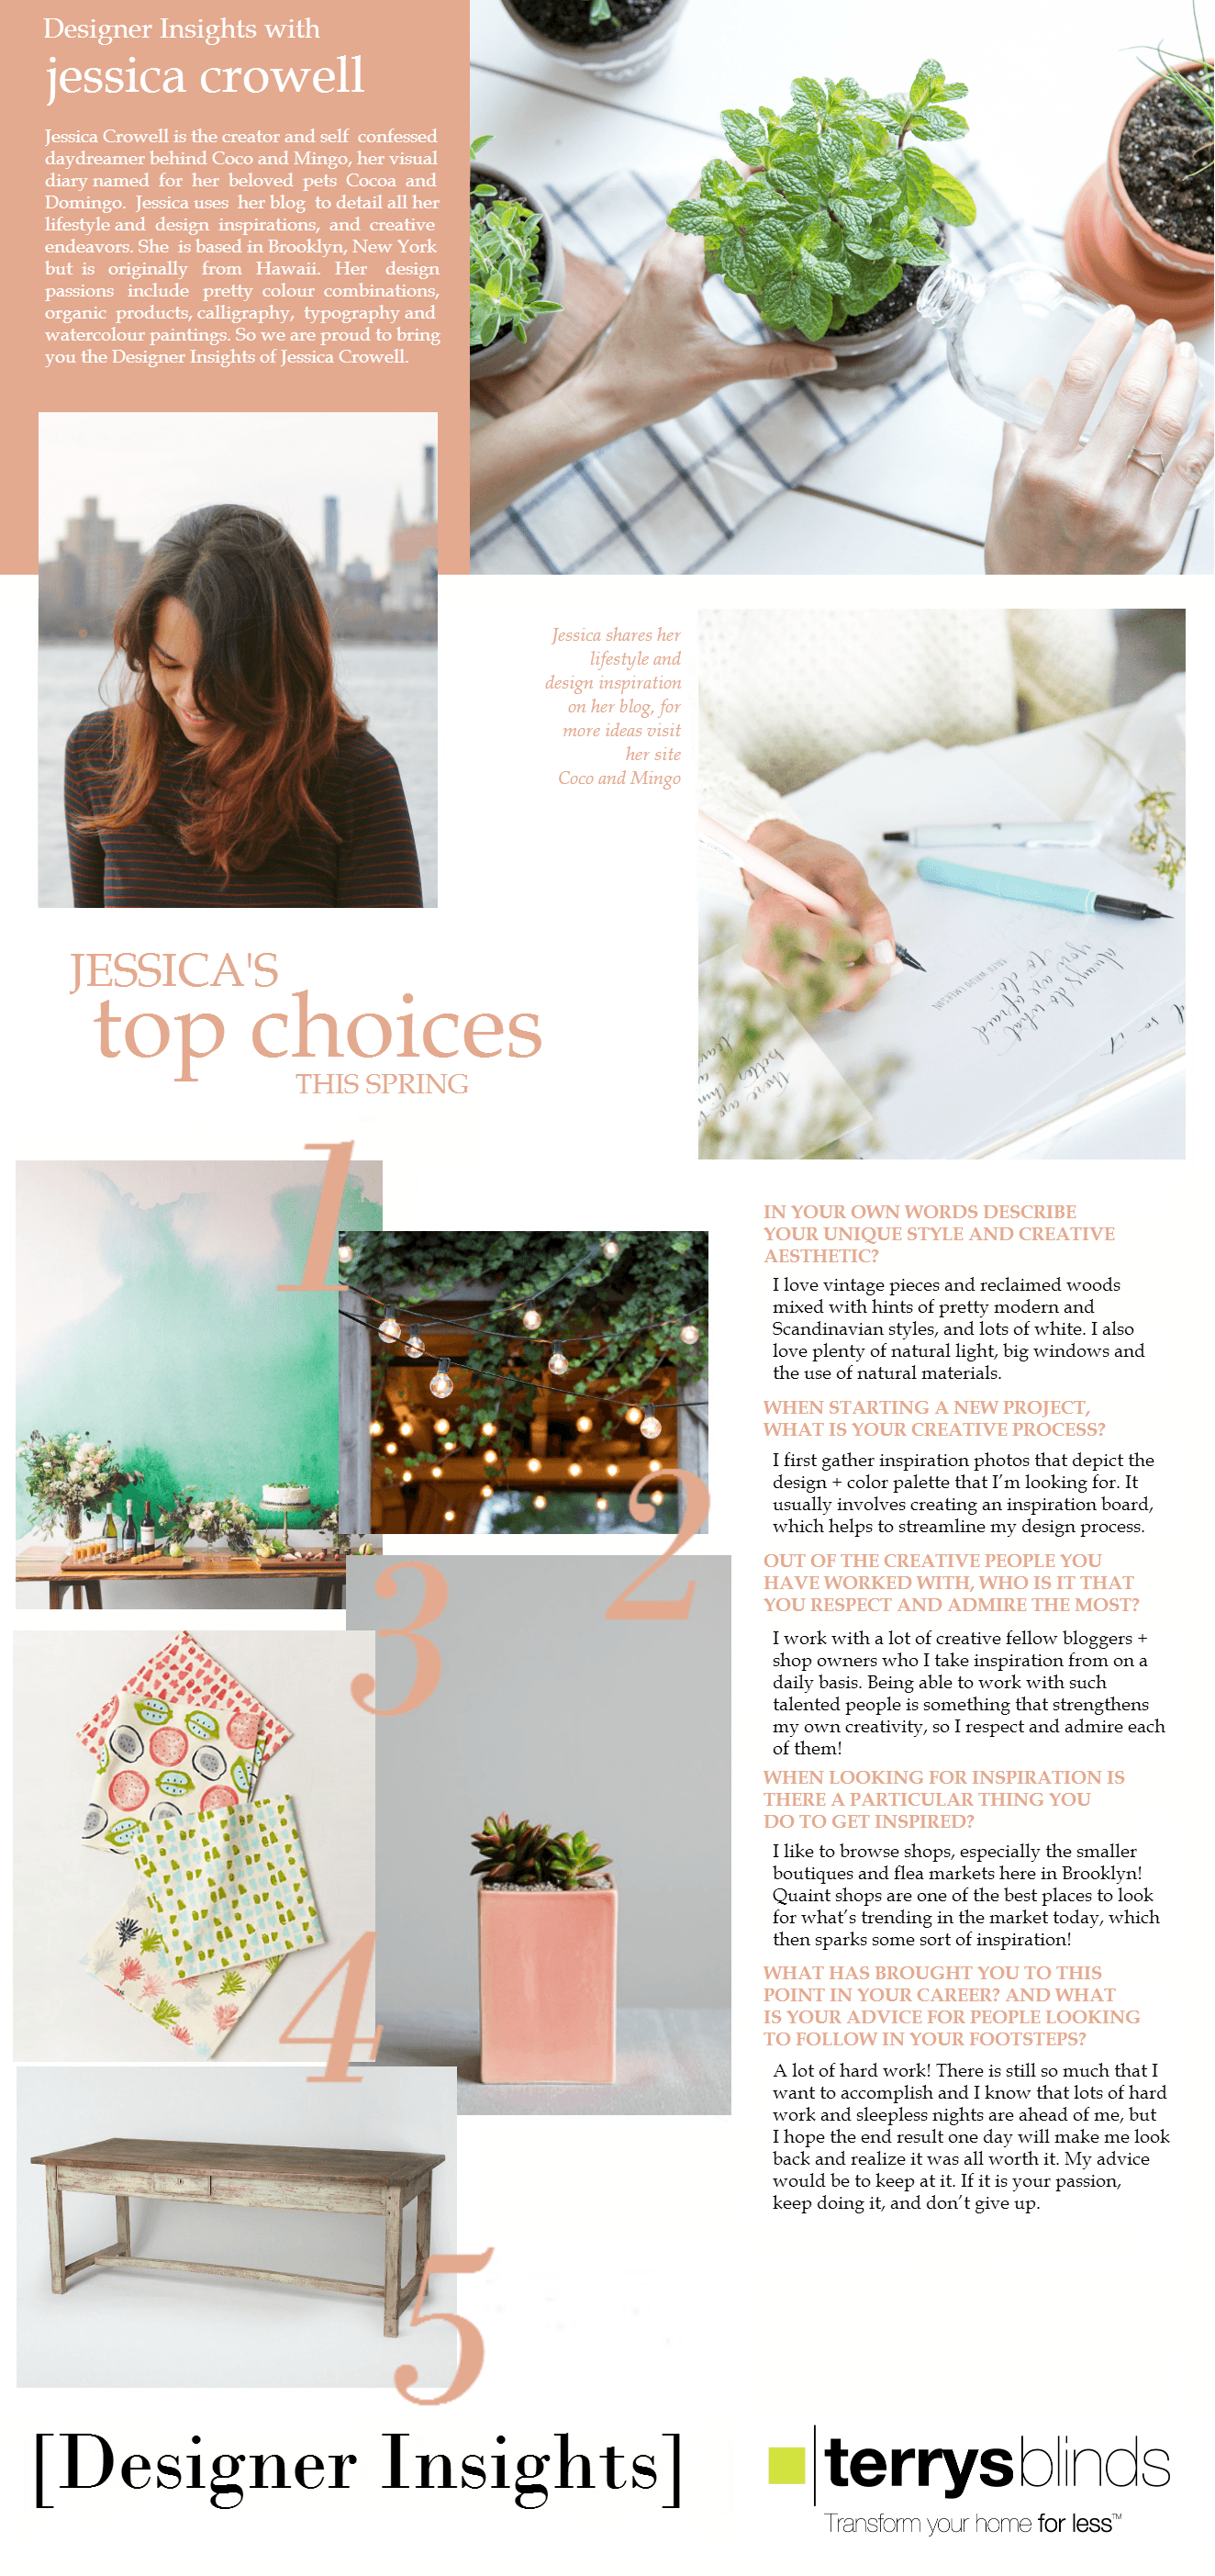 Designer Insights - Jessica Crowell